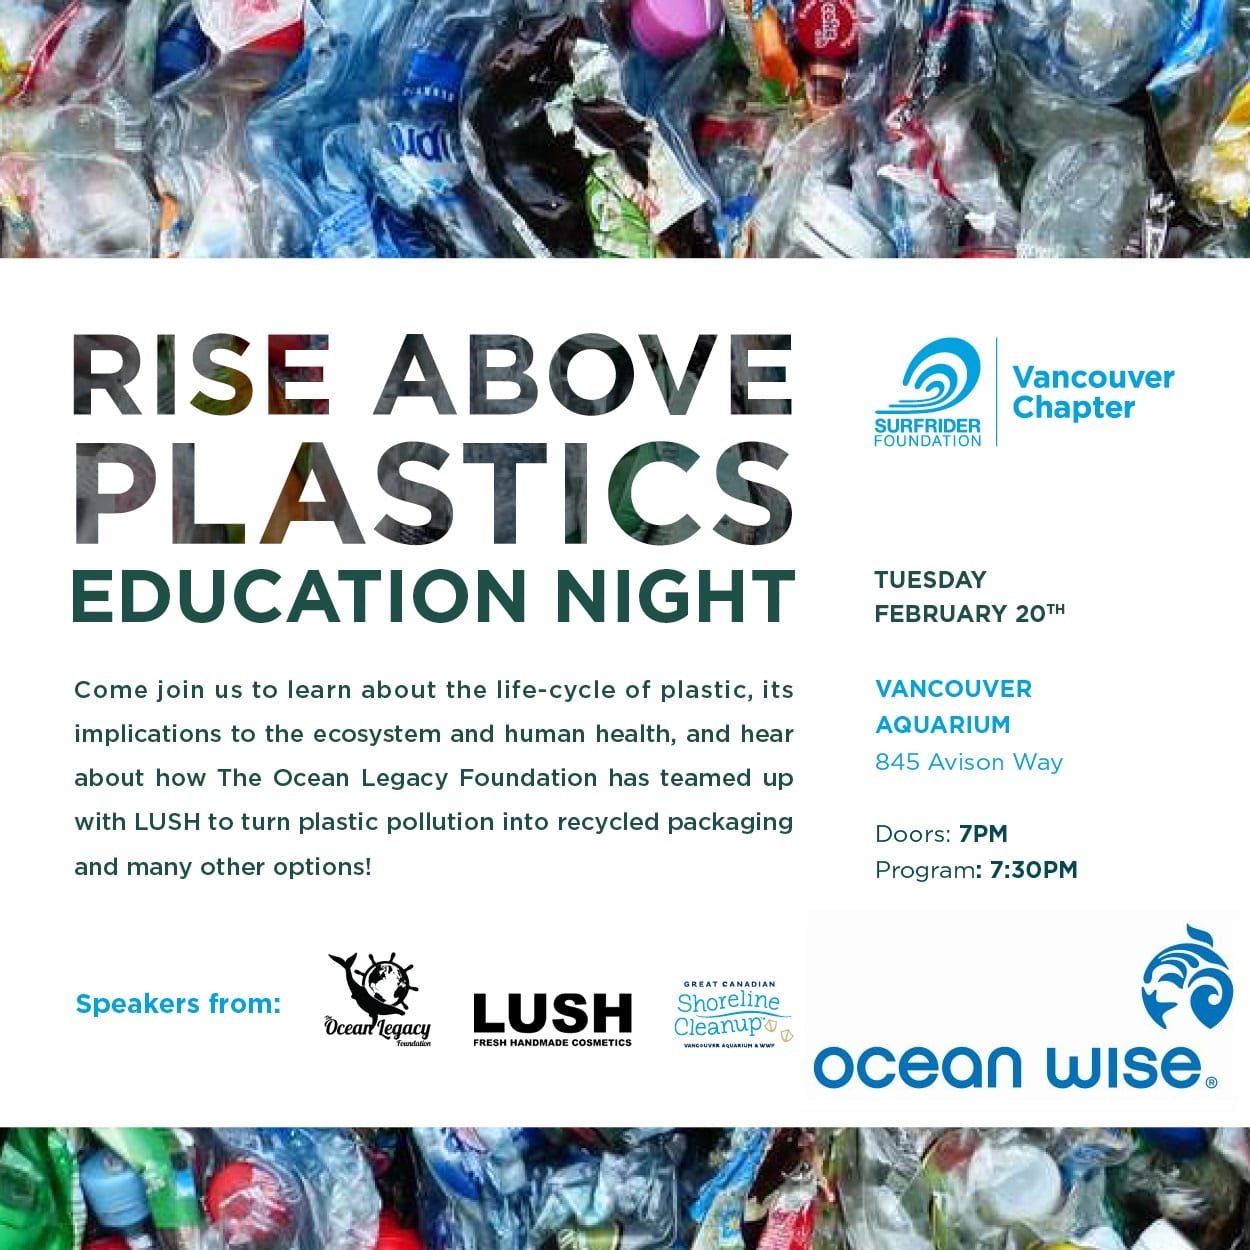 Rise Above Plastics | Education Night at The Vancouver Aquarium